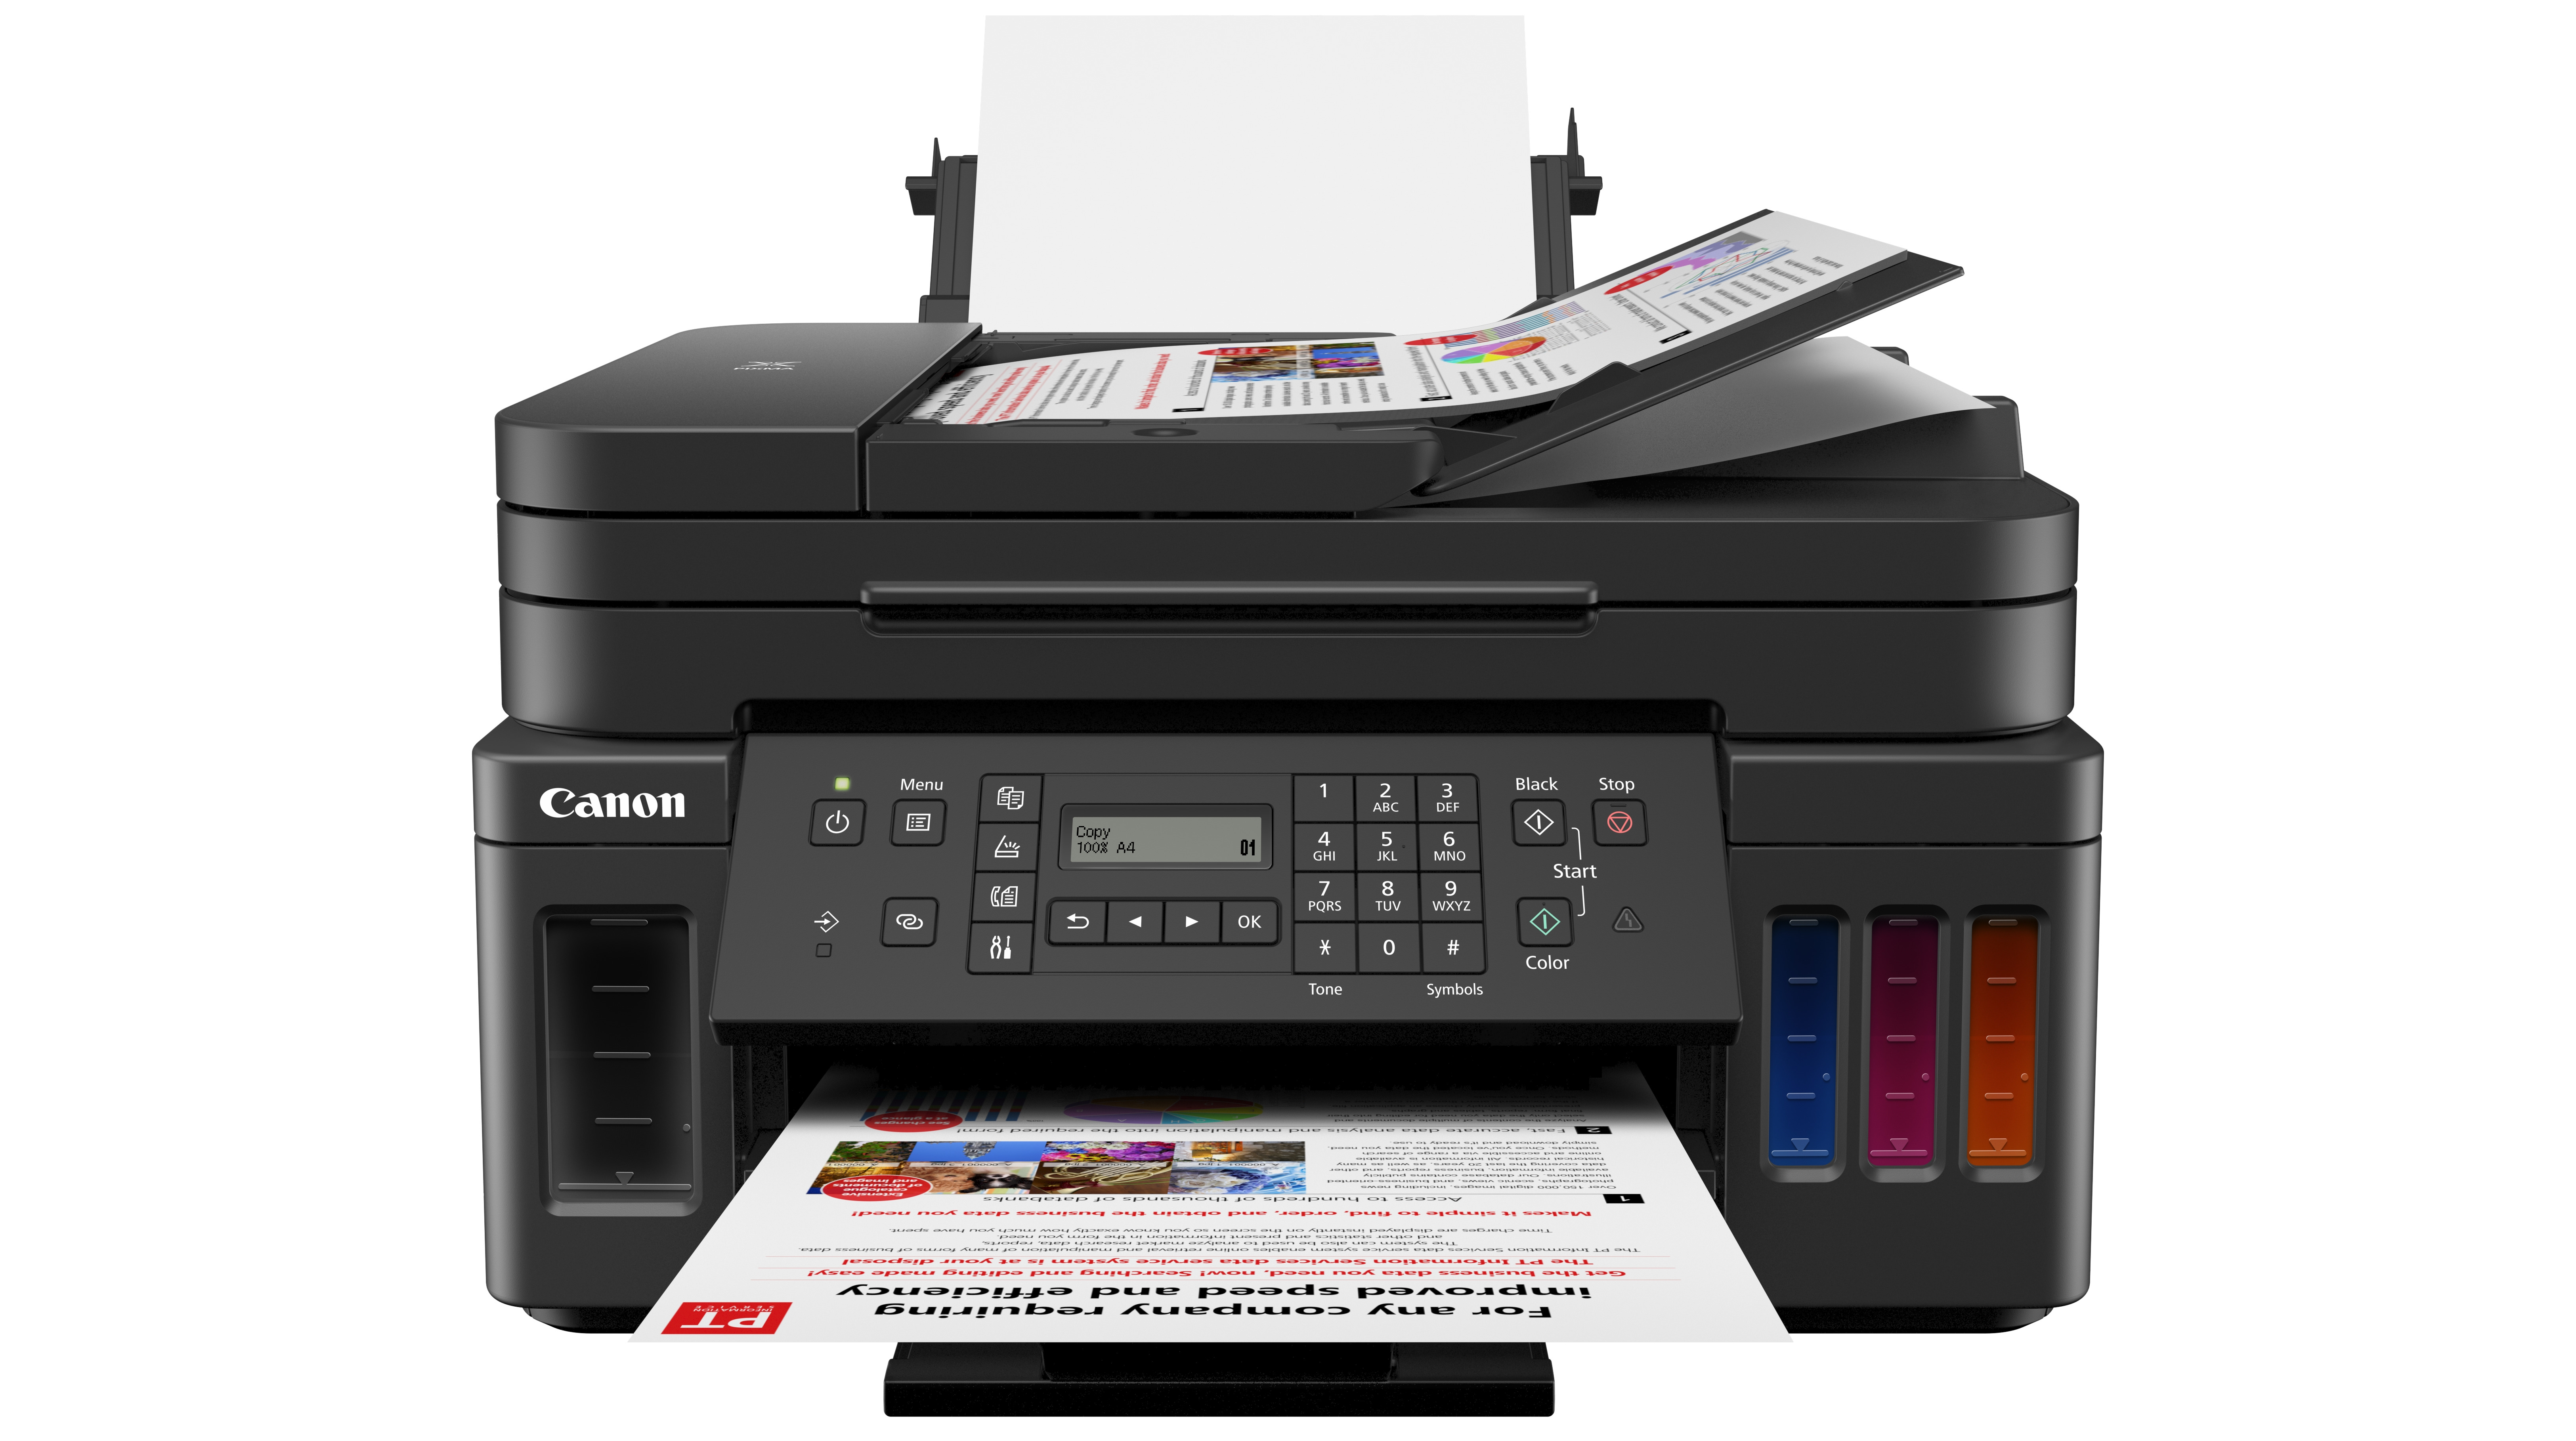 Canon launches two new ink tank printers – The Recycler - 22